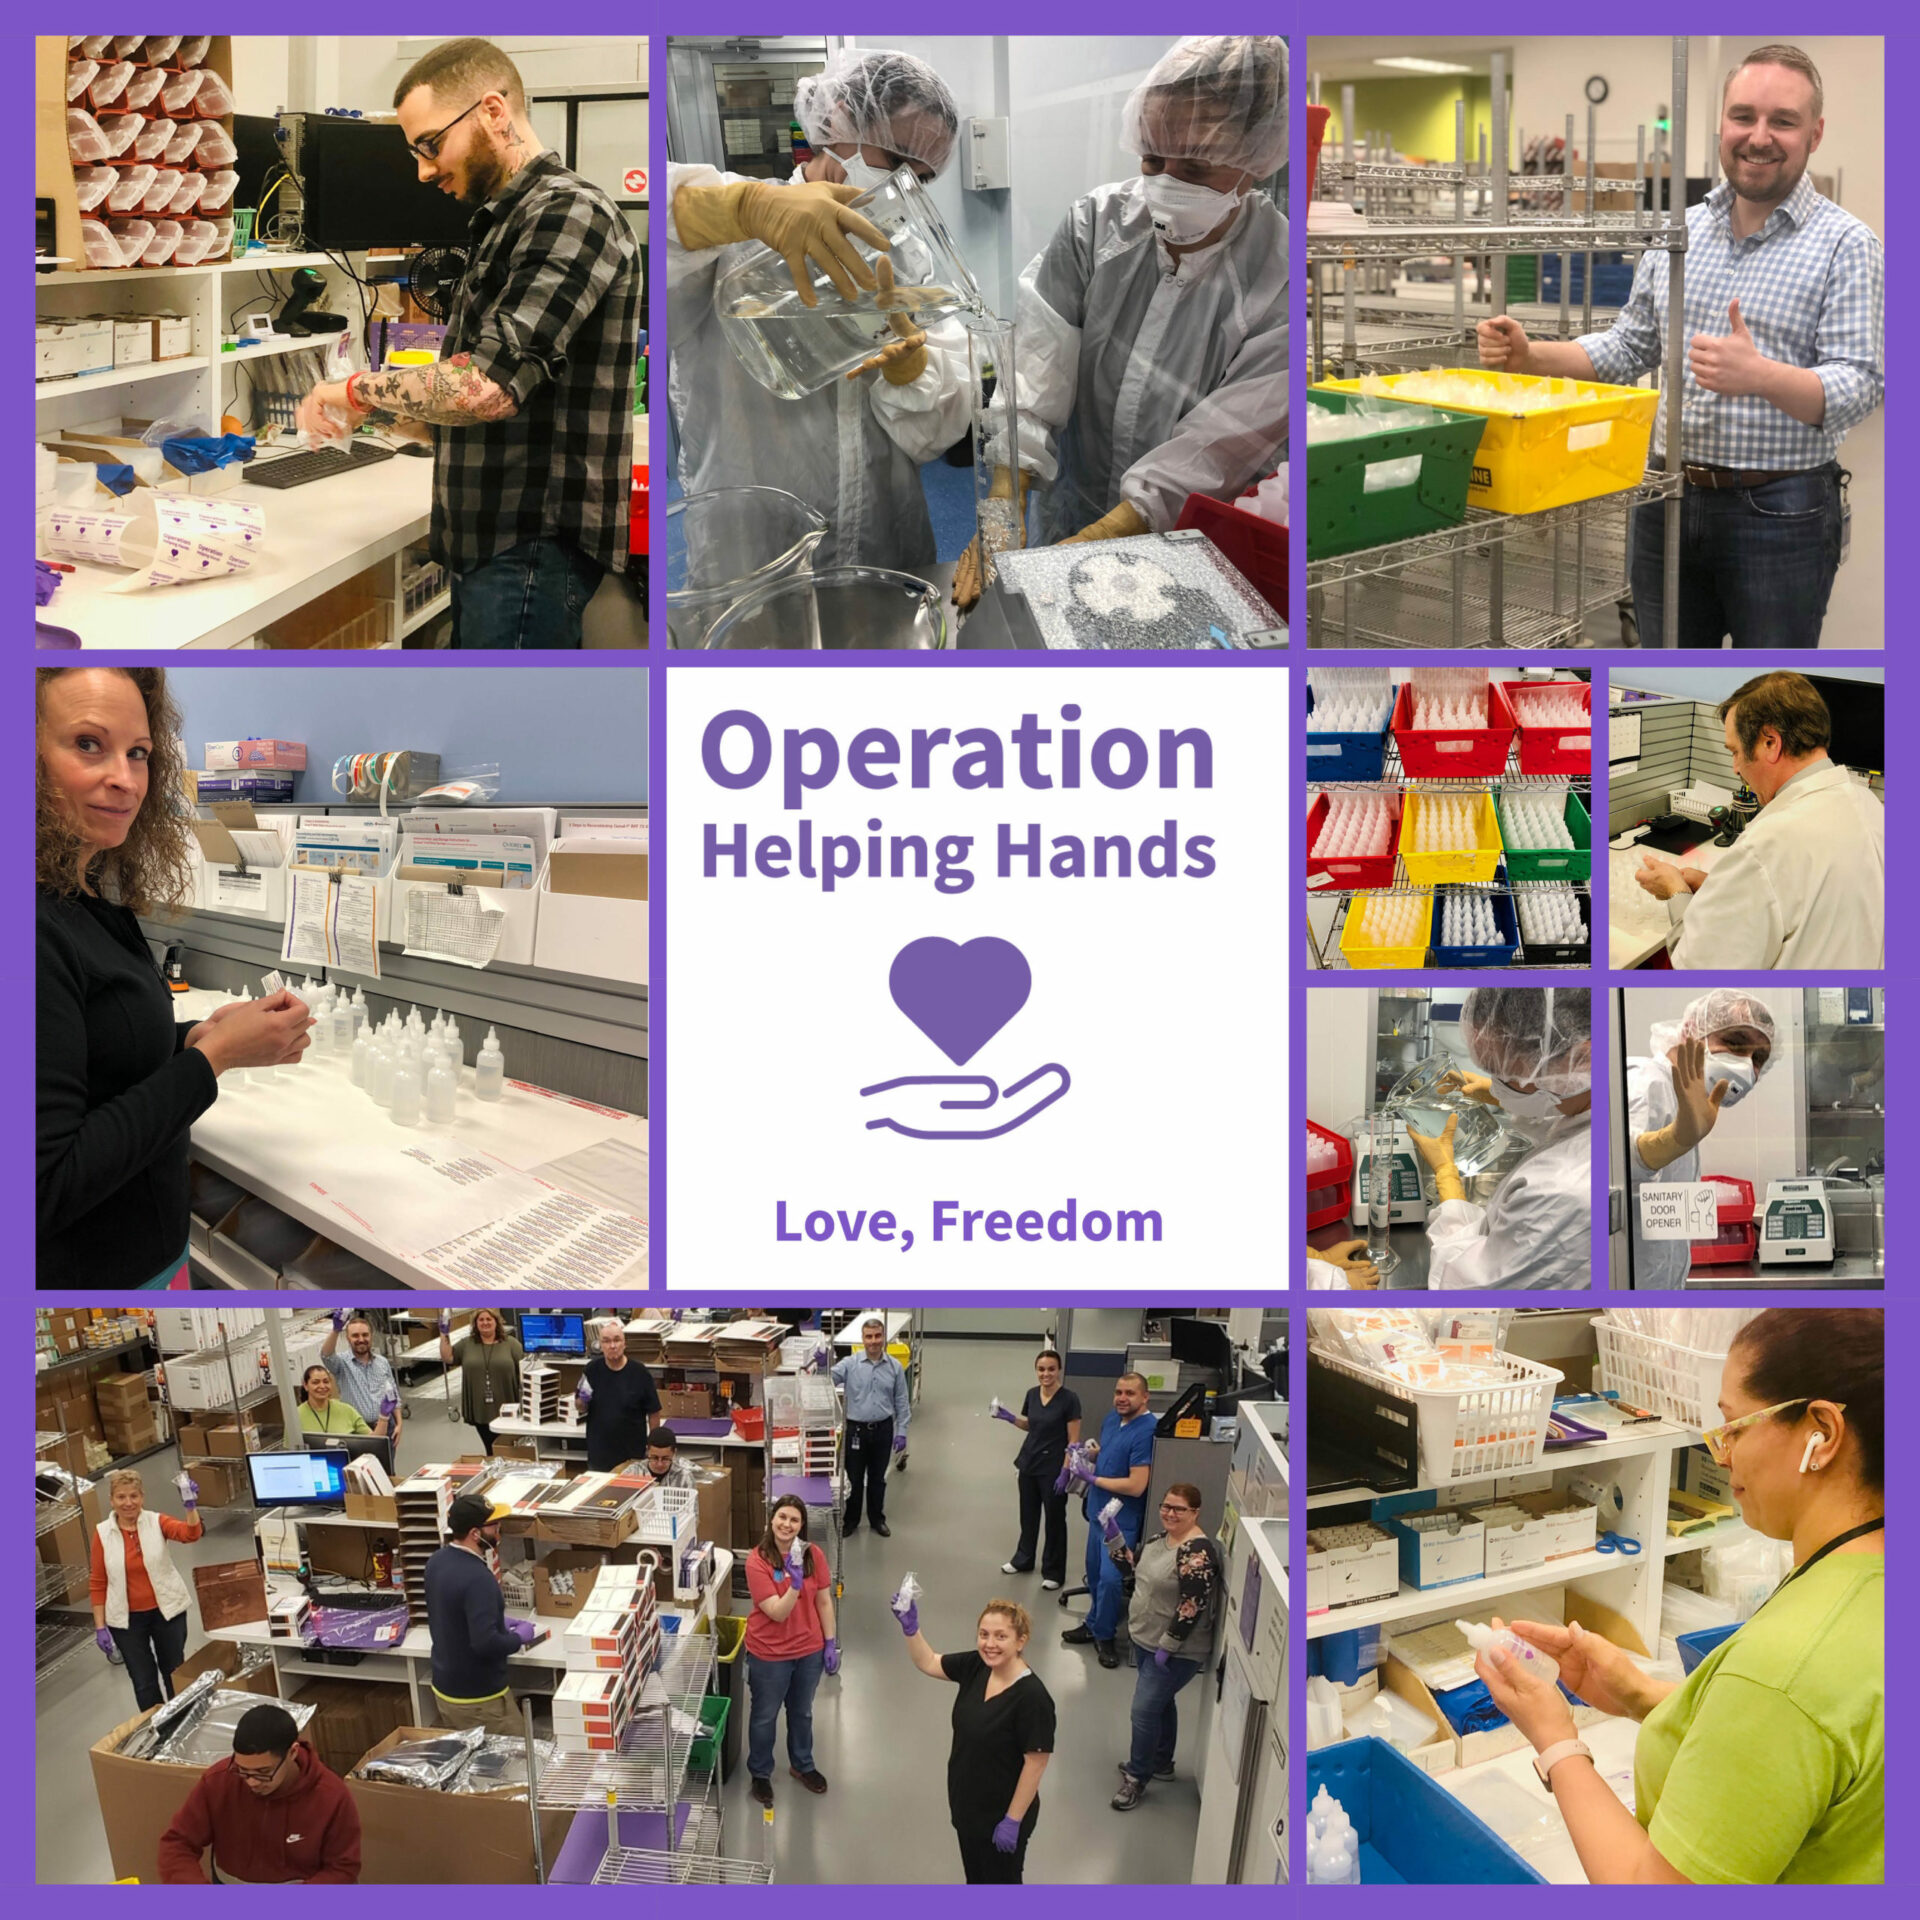 Making Sanitizer to Keep Nurses and Patients Safe